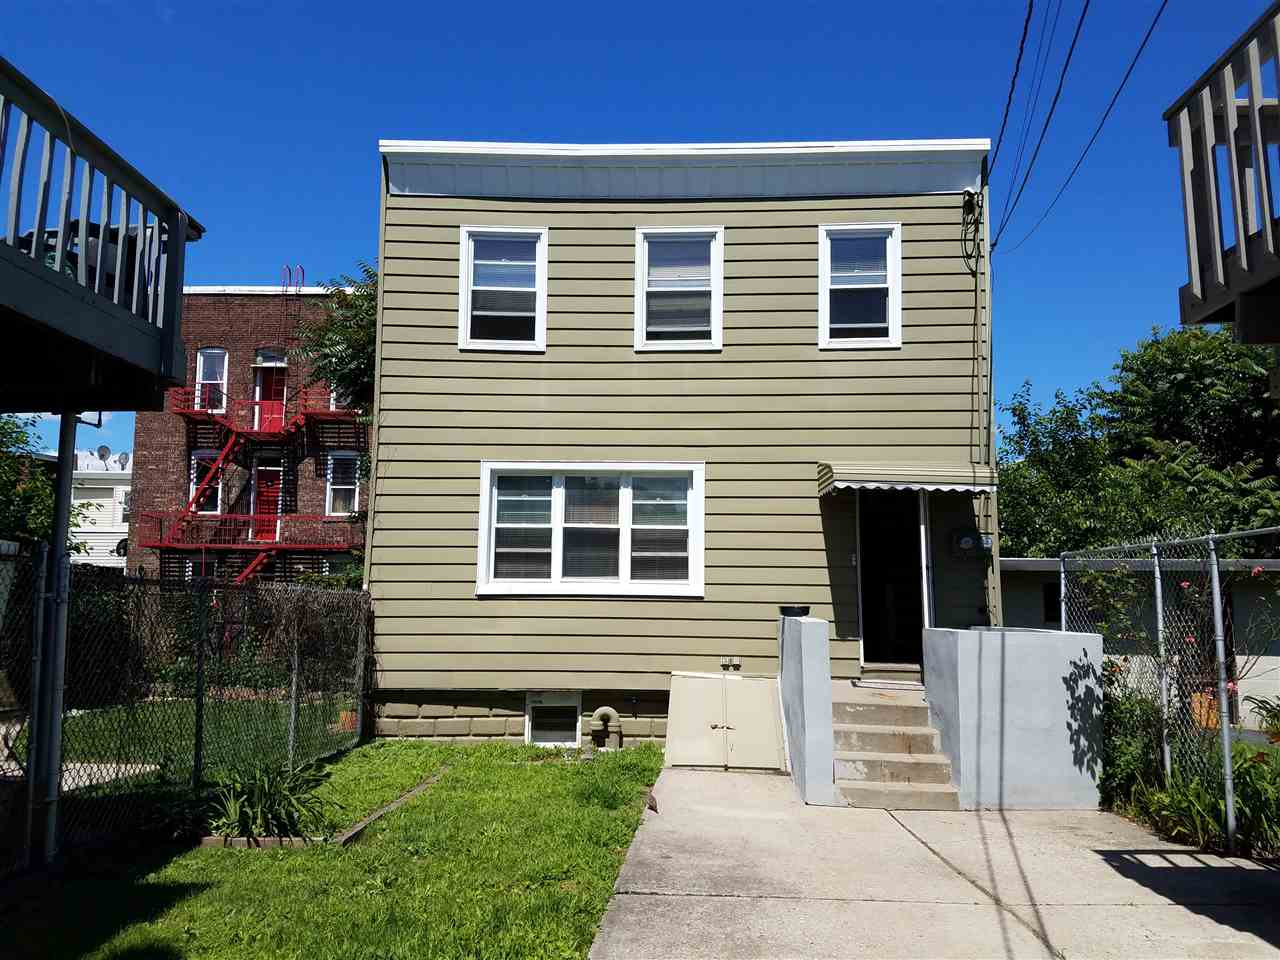 55 WALES AVE 2, JC, Journal Square, NJ 07306